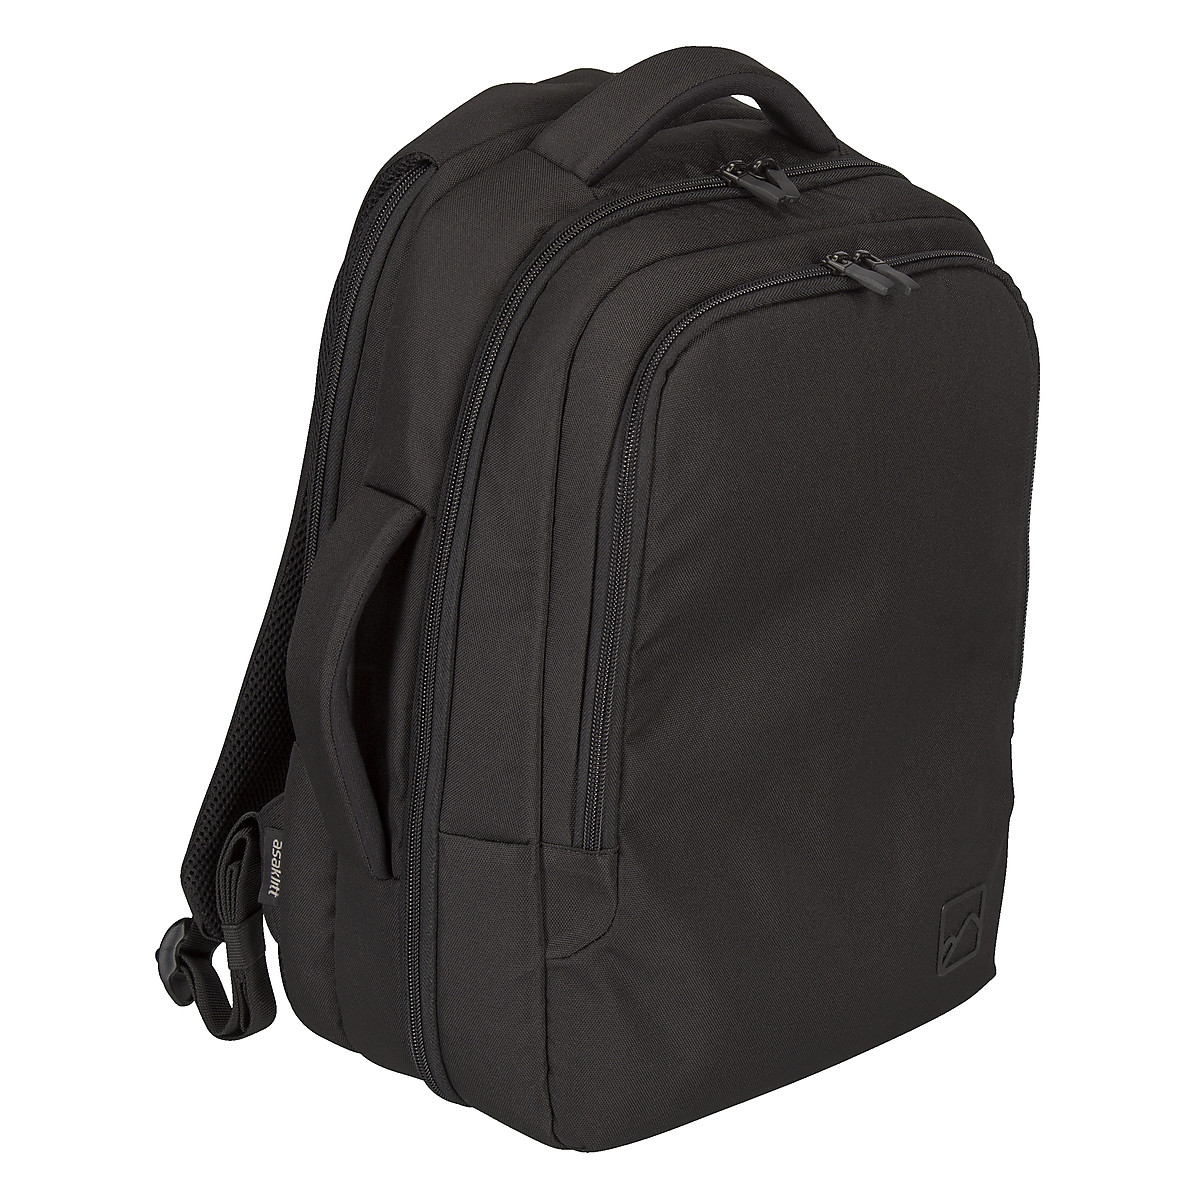 Asaklitt 22-Litre Backpack